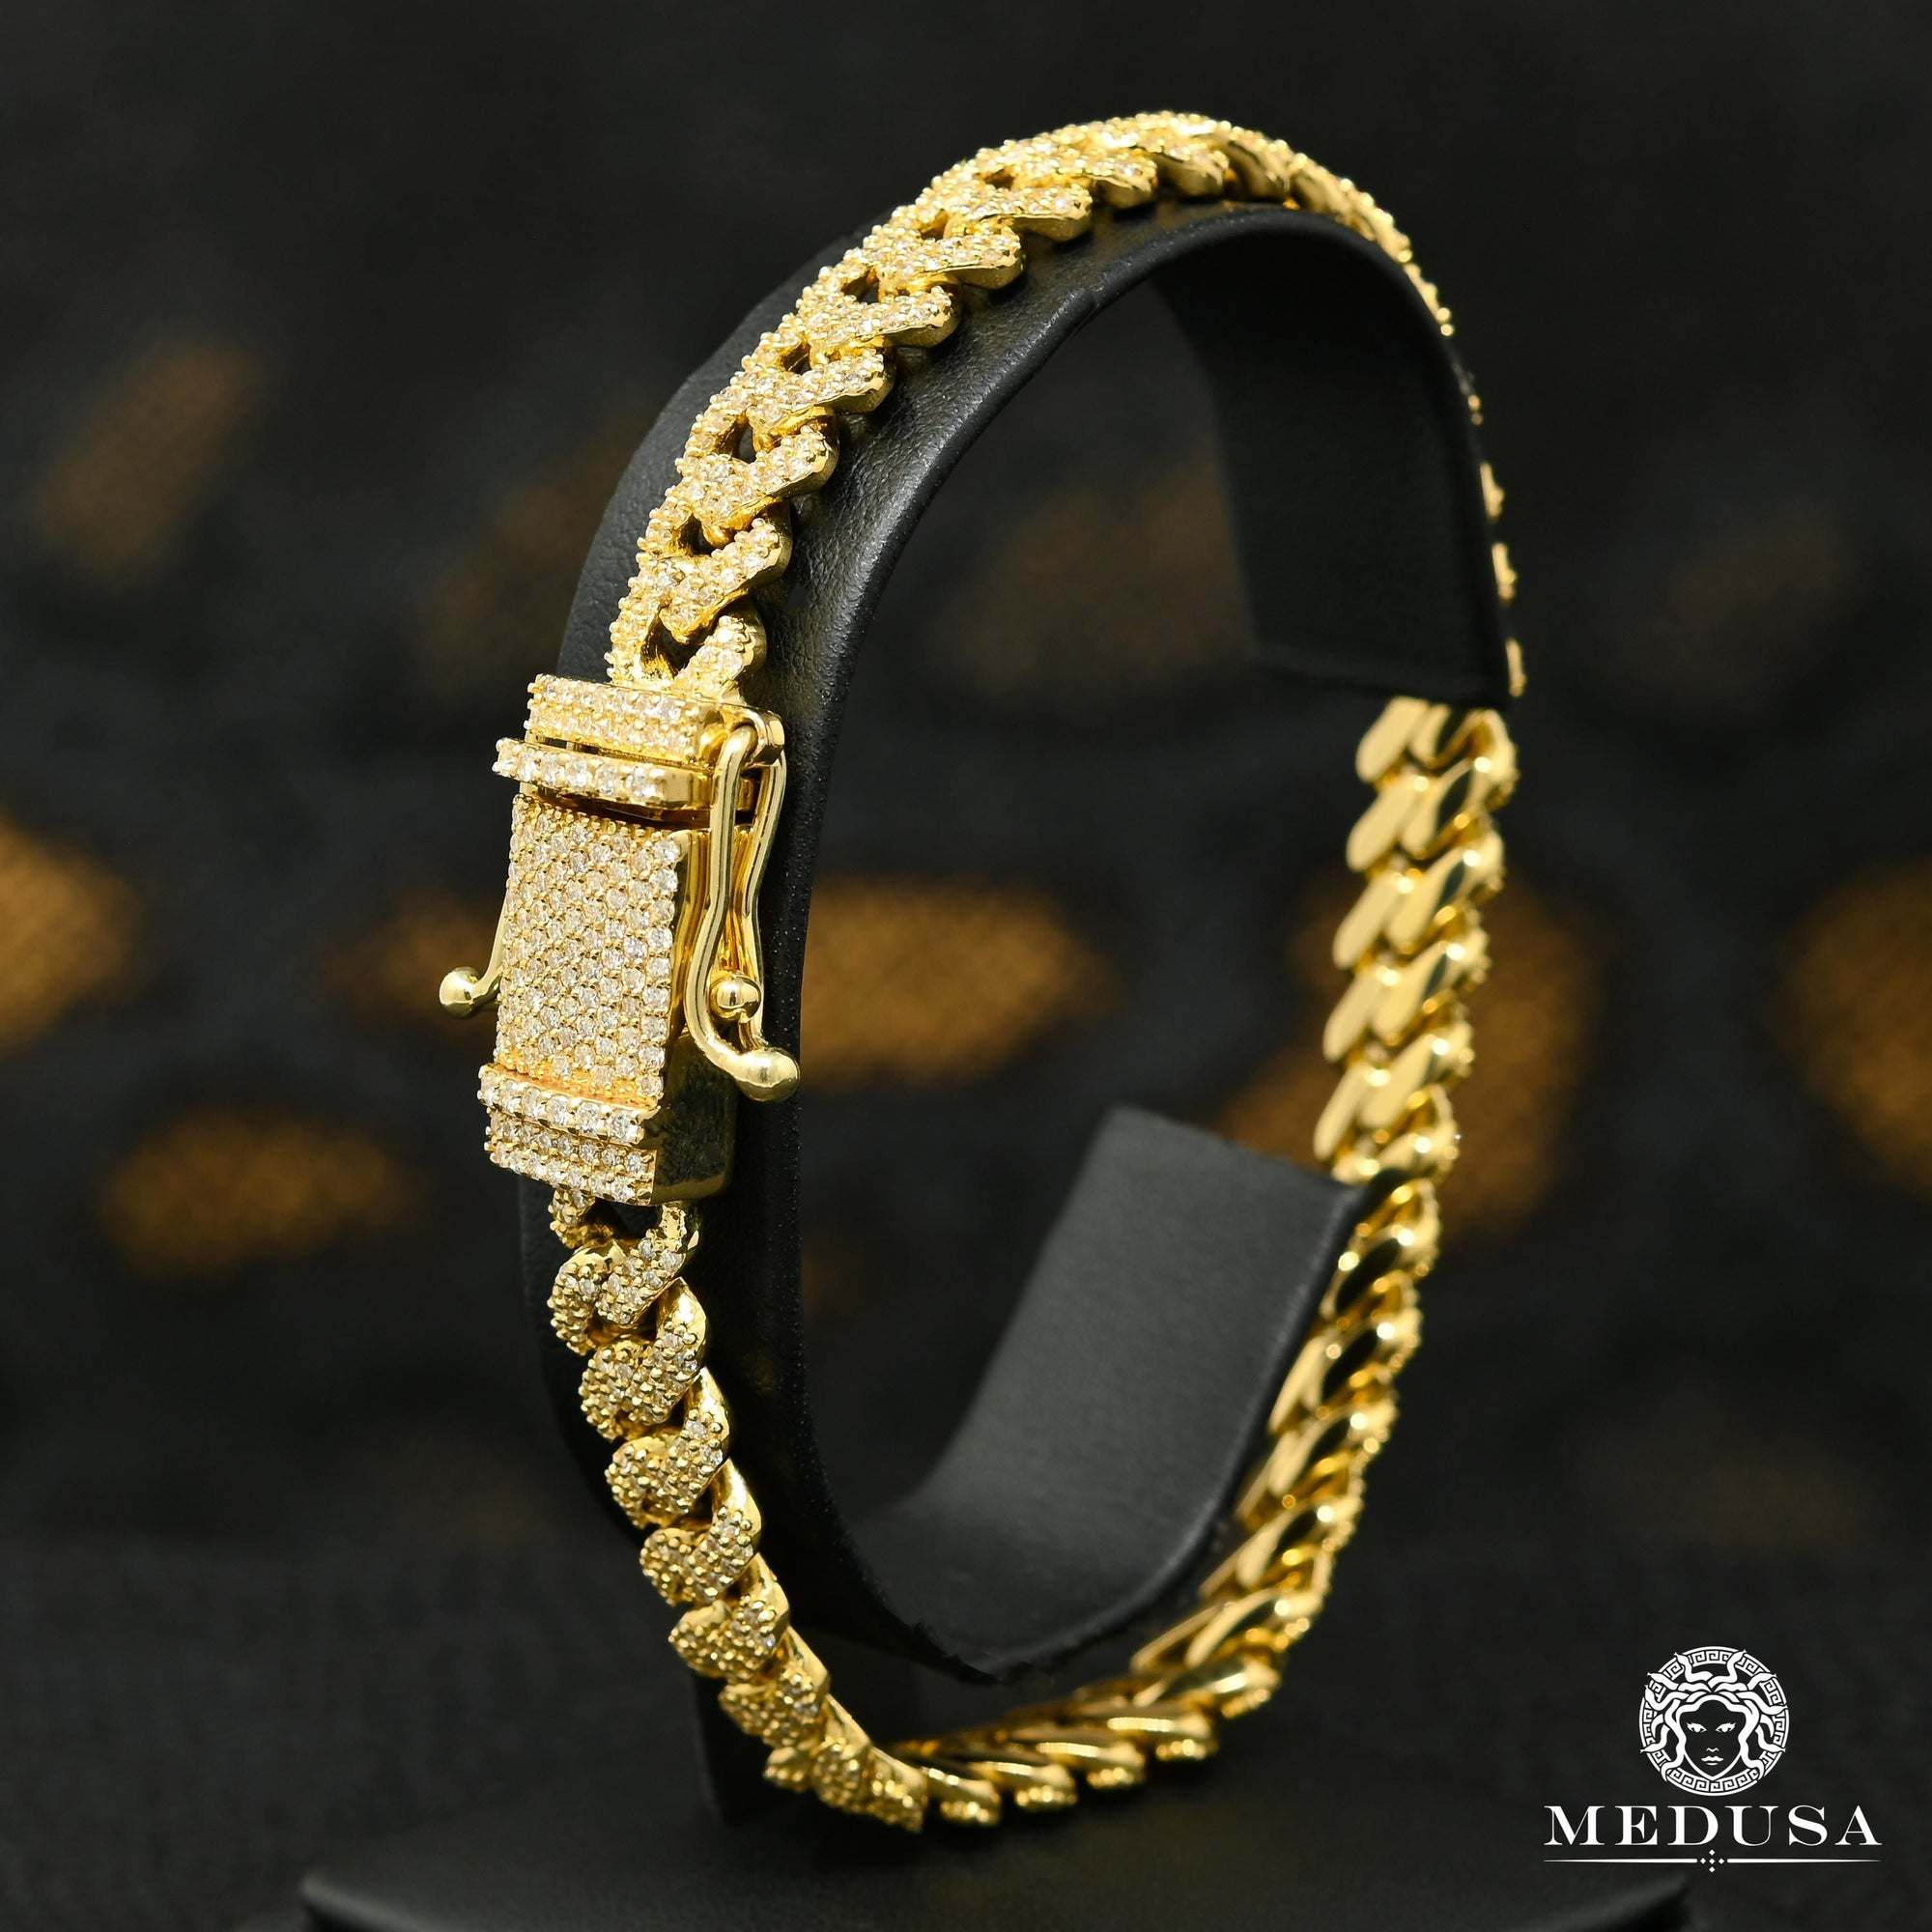 9.5mm Bracelet Cuban Iced Jumbo-Lock